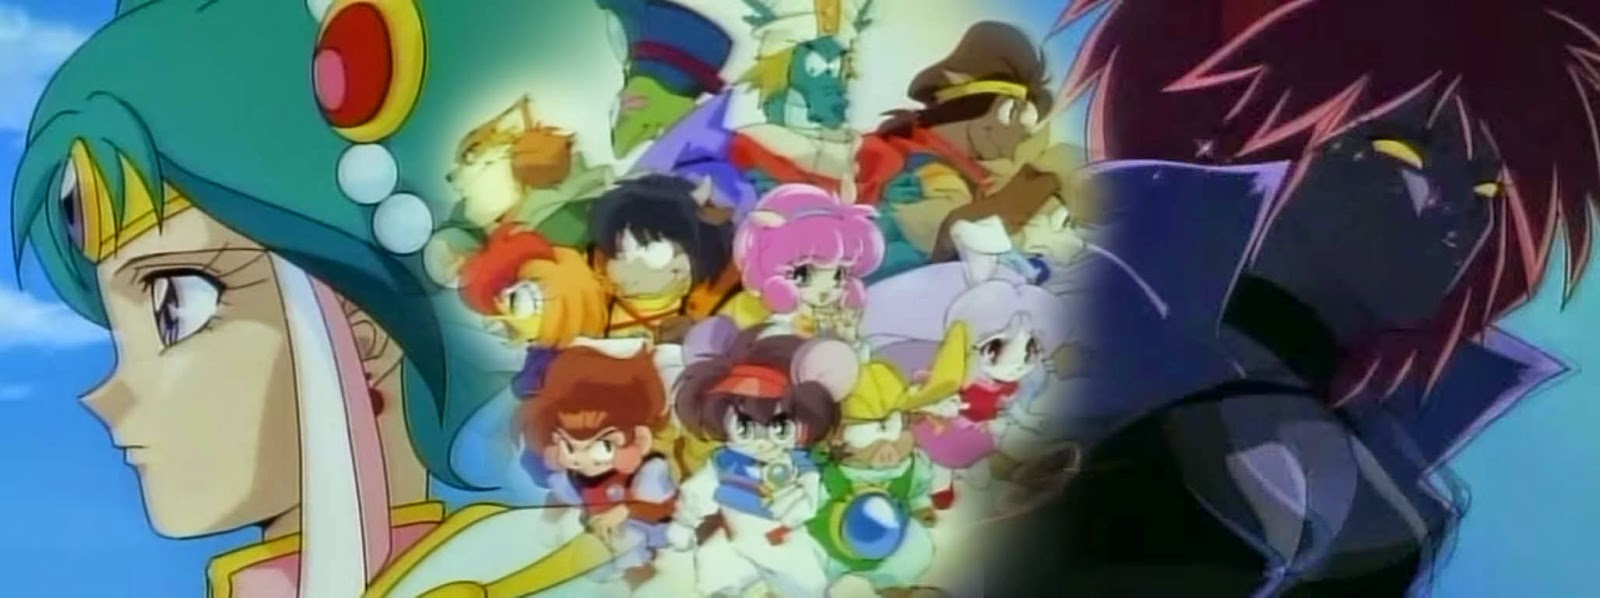 Eto Rangers 90's Anime on ABC-5 Chinese Zodiac Inspired Filipino dub Retro Pilipinas Feature